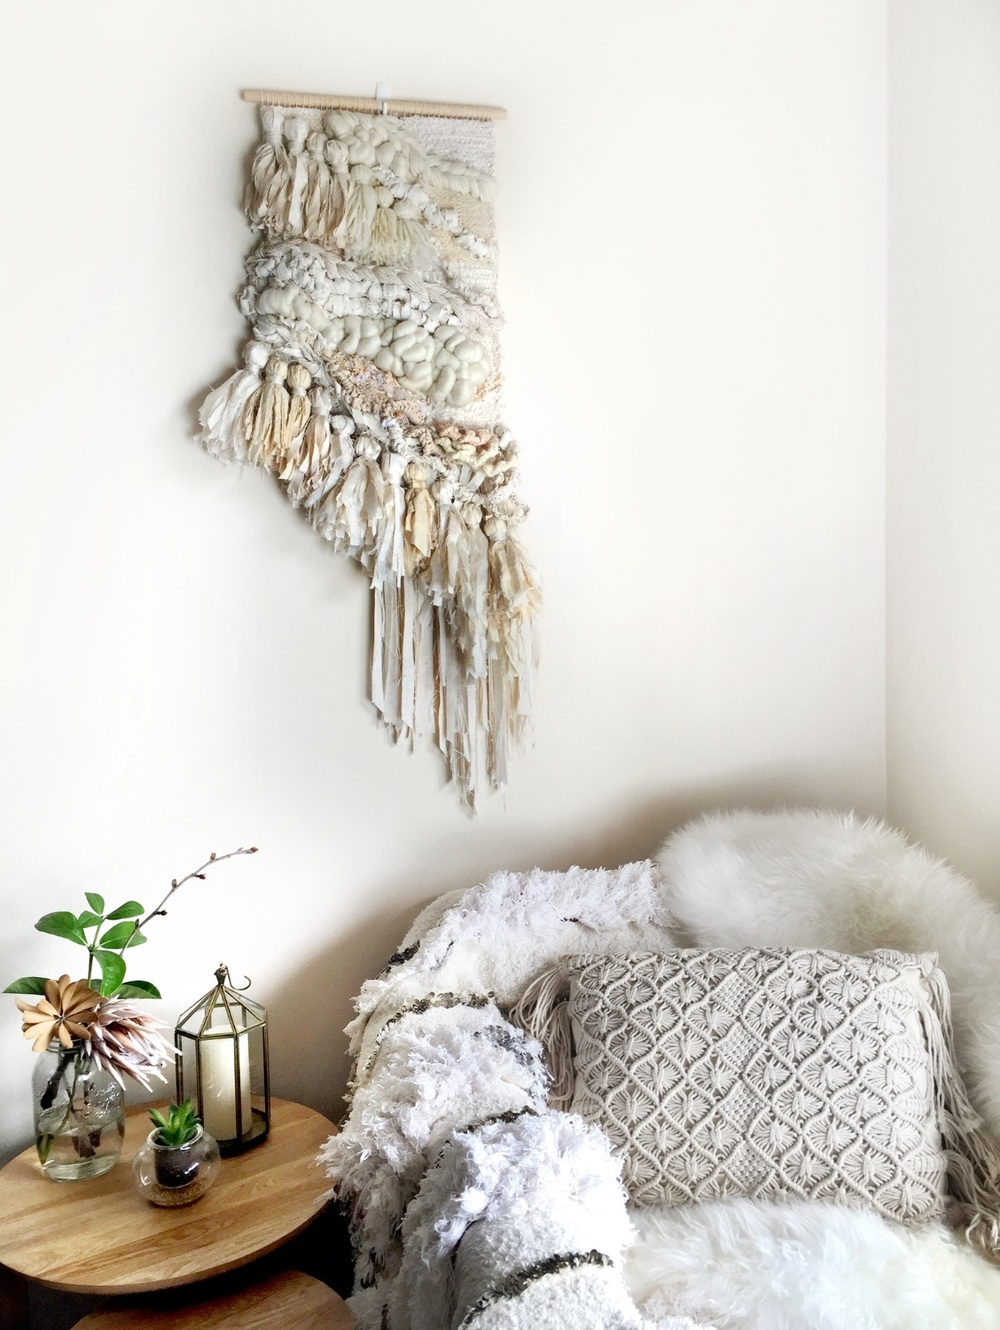 image via crossingthreads.co to shop their gorgeous macrame pieces go to their website